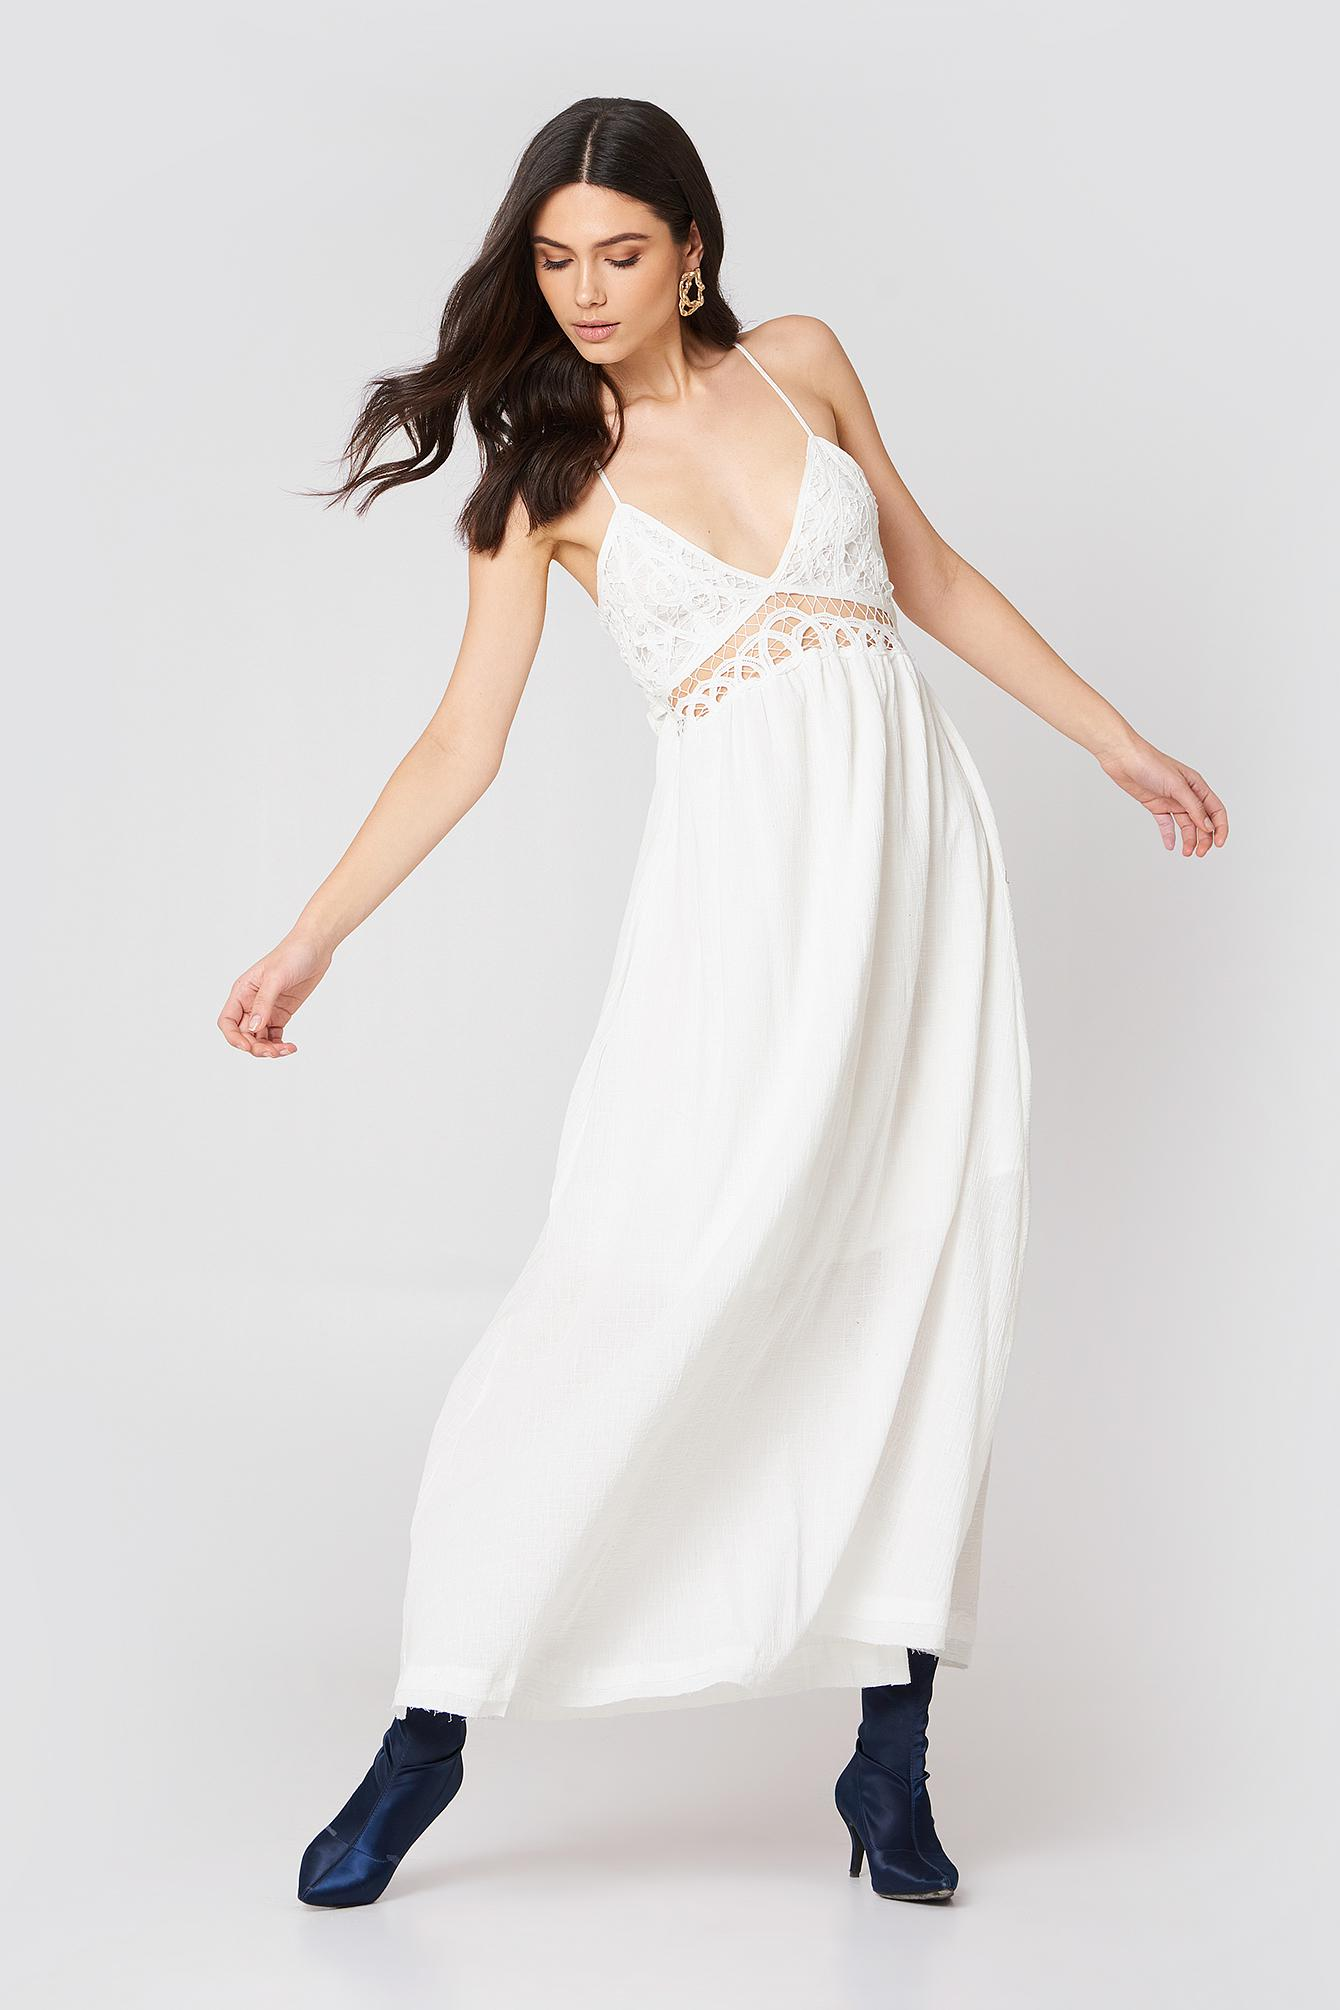 8b52bac808e8 Lyst - Moon River Lace Maxi Dress in White